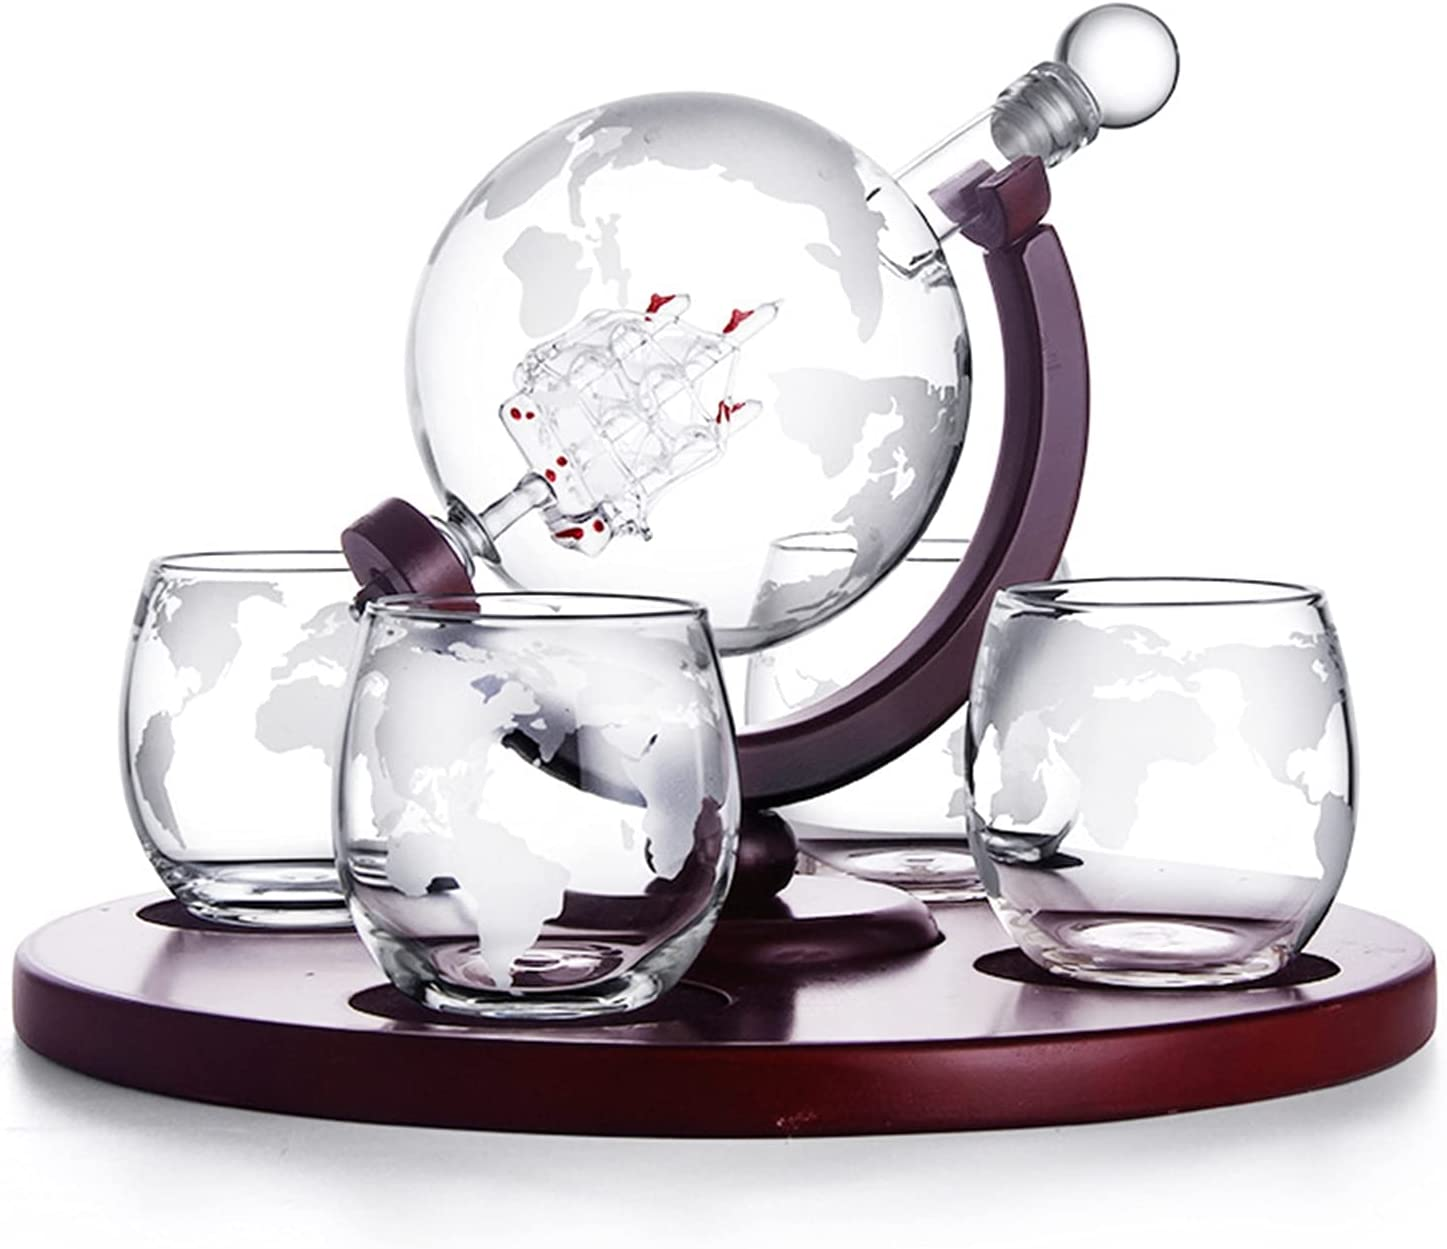 OFFer Believesinkinto Whiskey Decanter Globe Set 4 Etched W Sale with